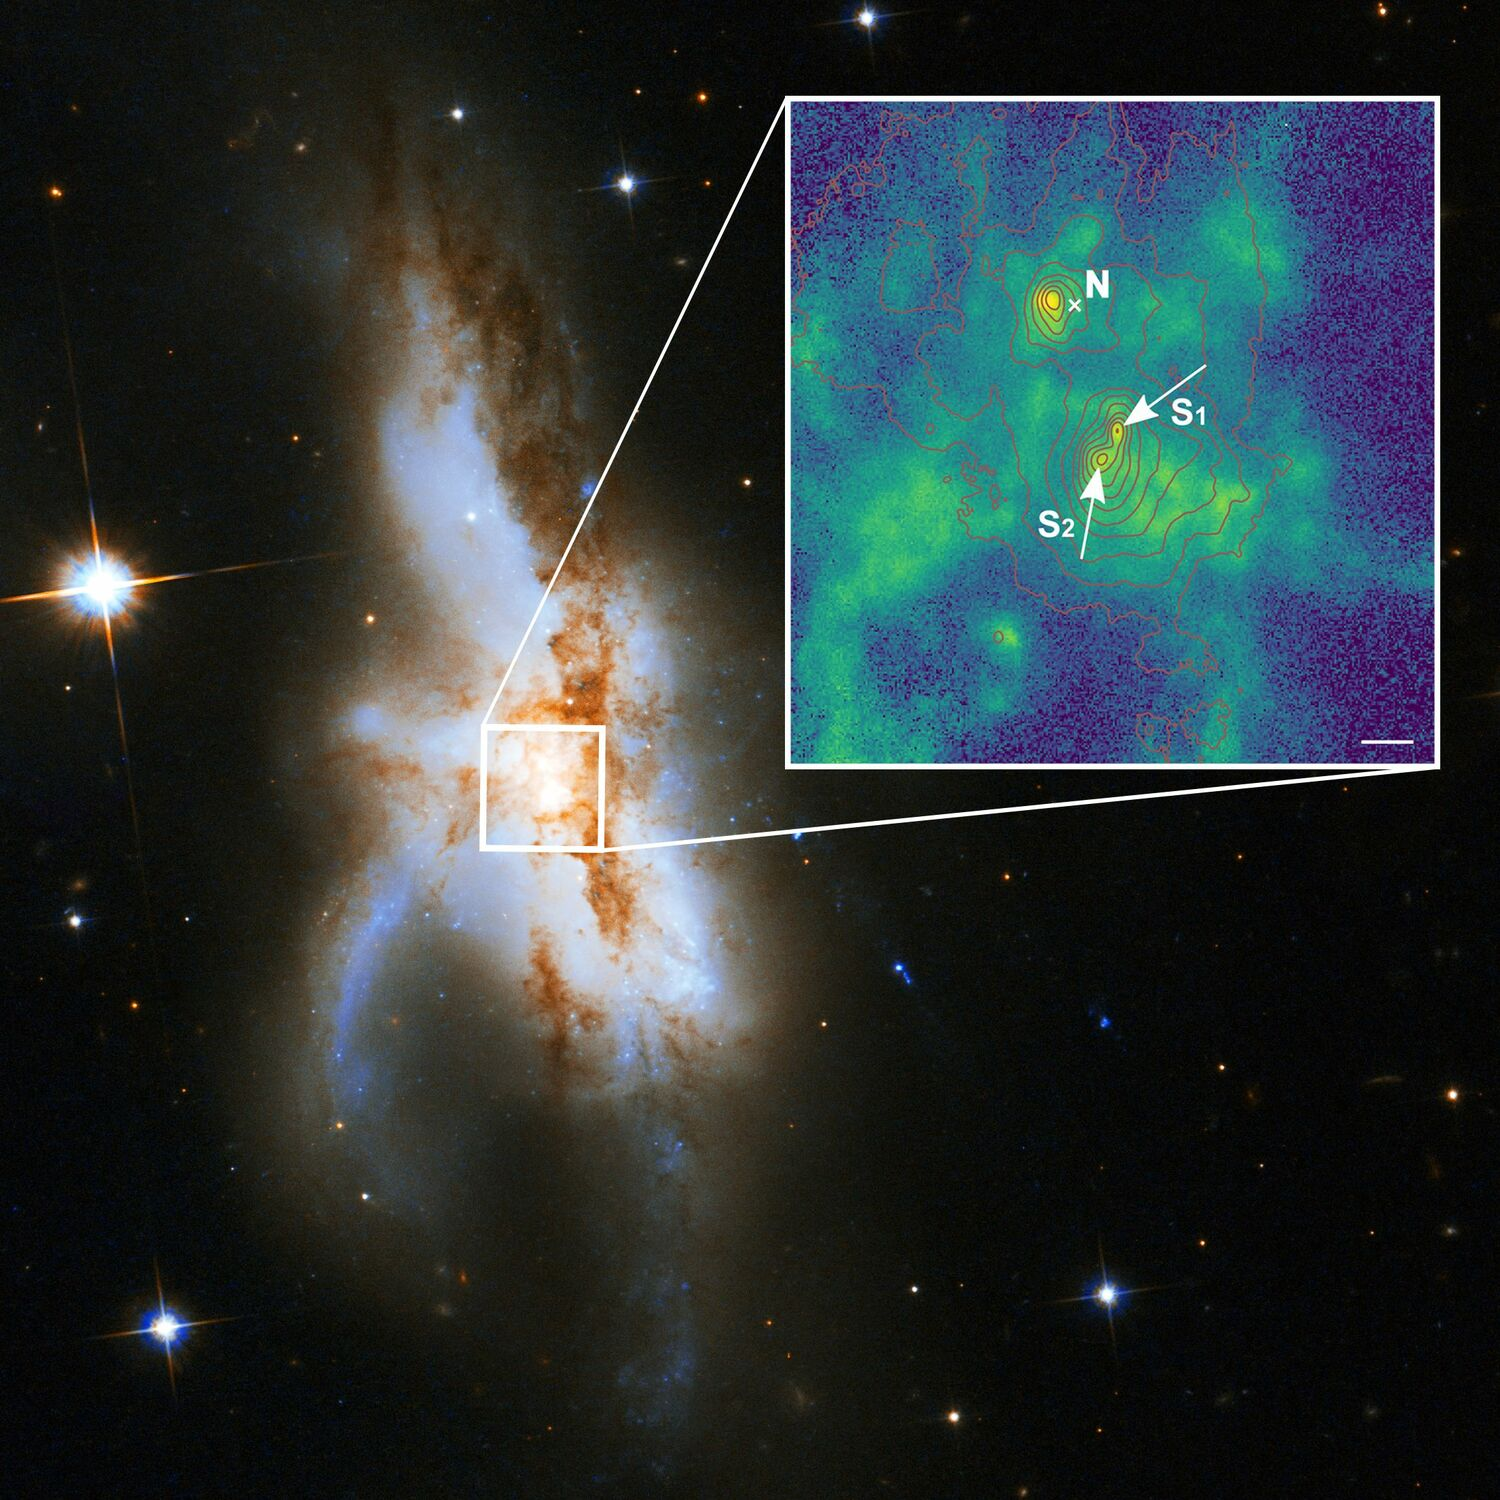 The irregular galaxy NGC 6240. New observations show that it harbours not two but three supermassive black holes at its core. The northern black hole (N) is active and was known before. The zoomed-in new high-spatial resolution image shows that the southern component consists of two supermassive black holes (S1 and S2). The green colour indicates the distribution of gas ionized by radiation surrounding the black holes. The red lines show the contours of the starlight from the galaxy and the length of the white bar corresponds to 1000 light years.